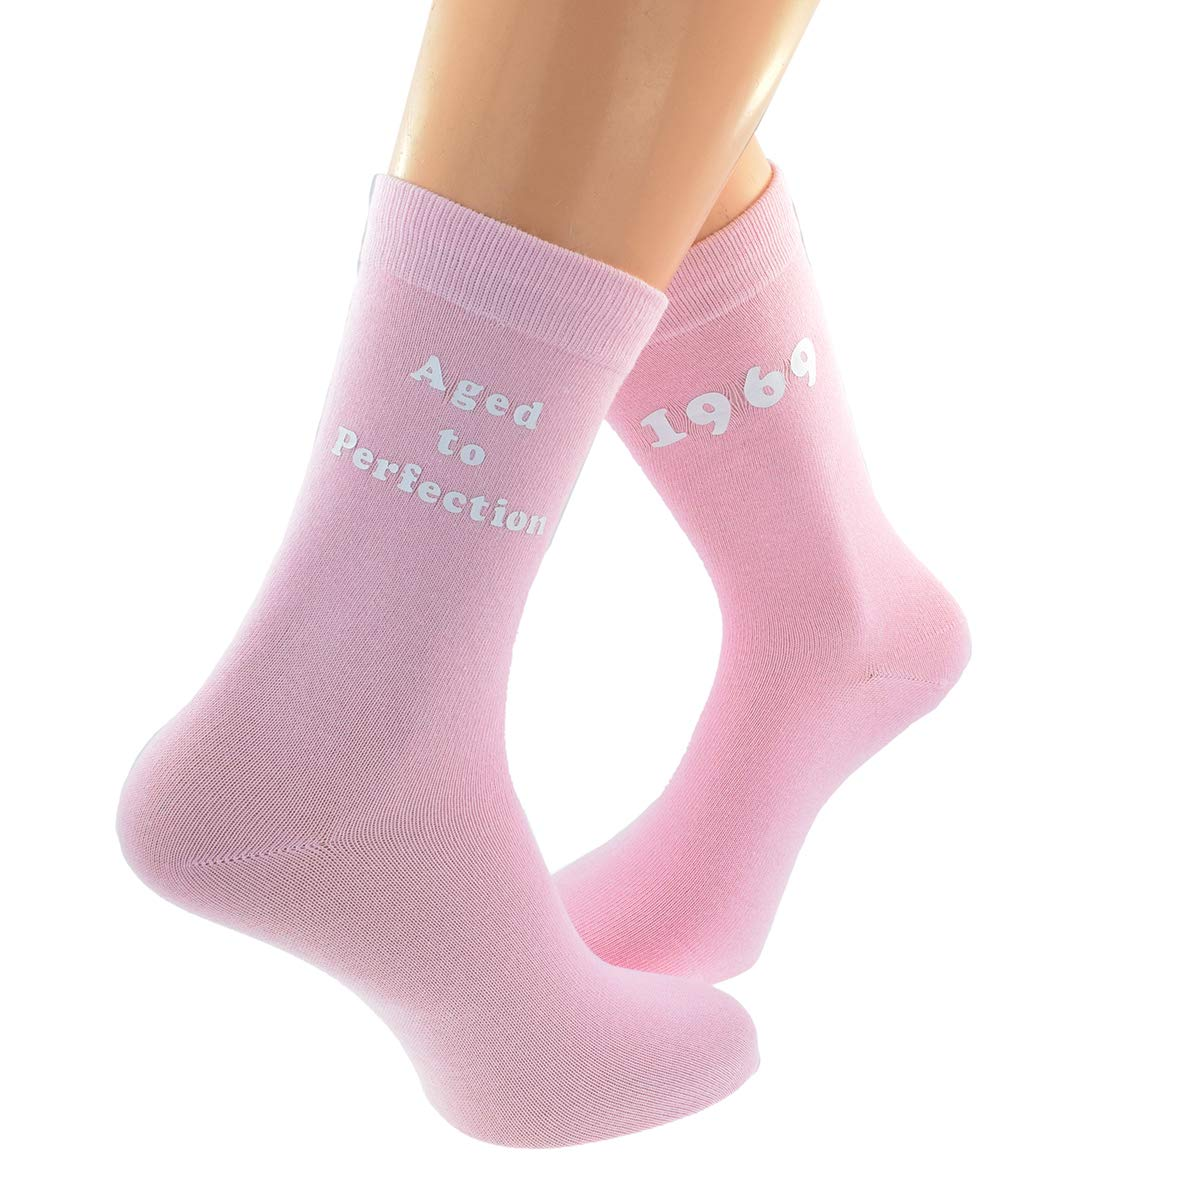 Aged to Perfection 1969 Printed on PINK Womens Socks for 50th Birthday Present 2019